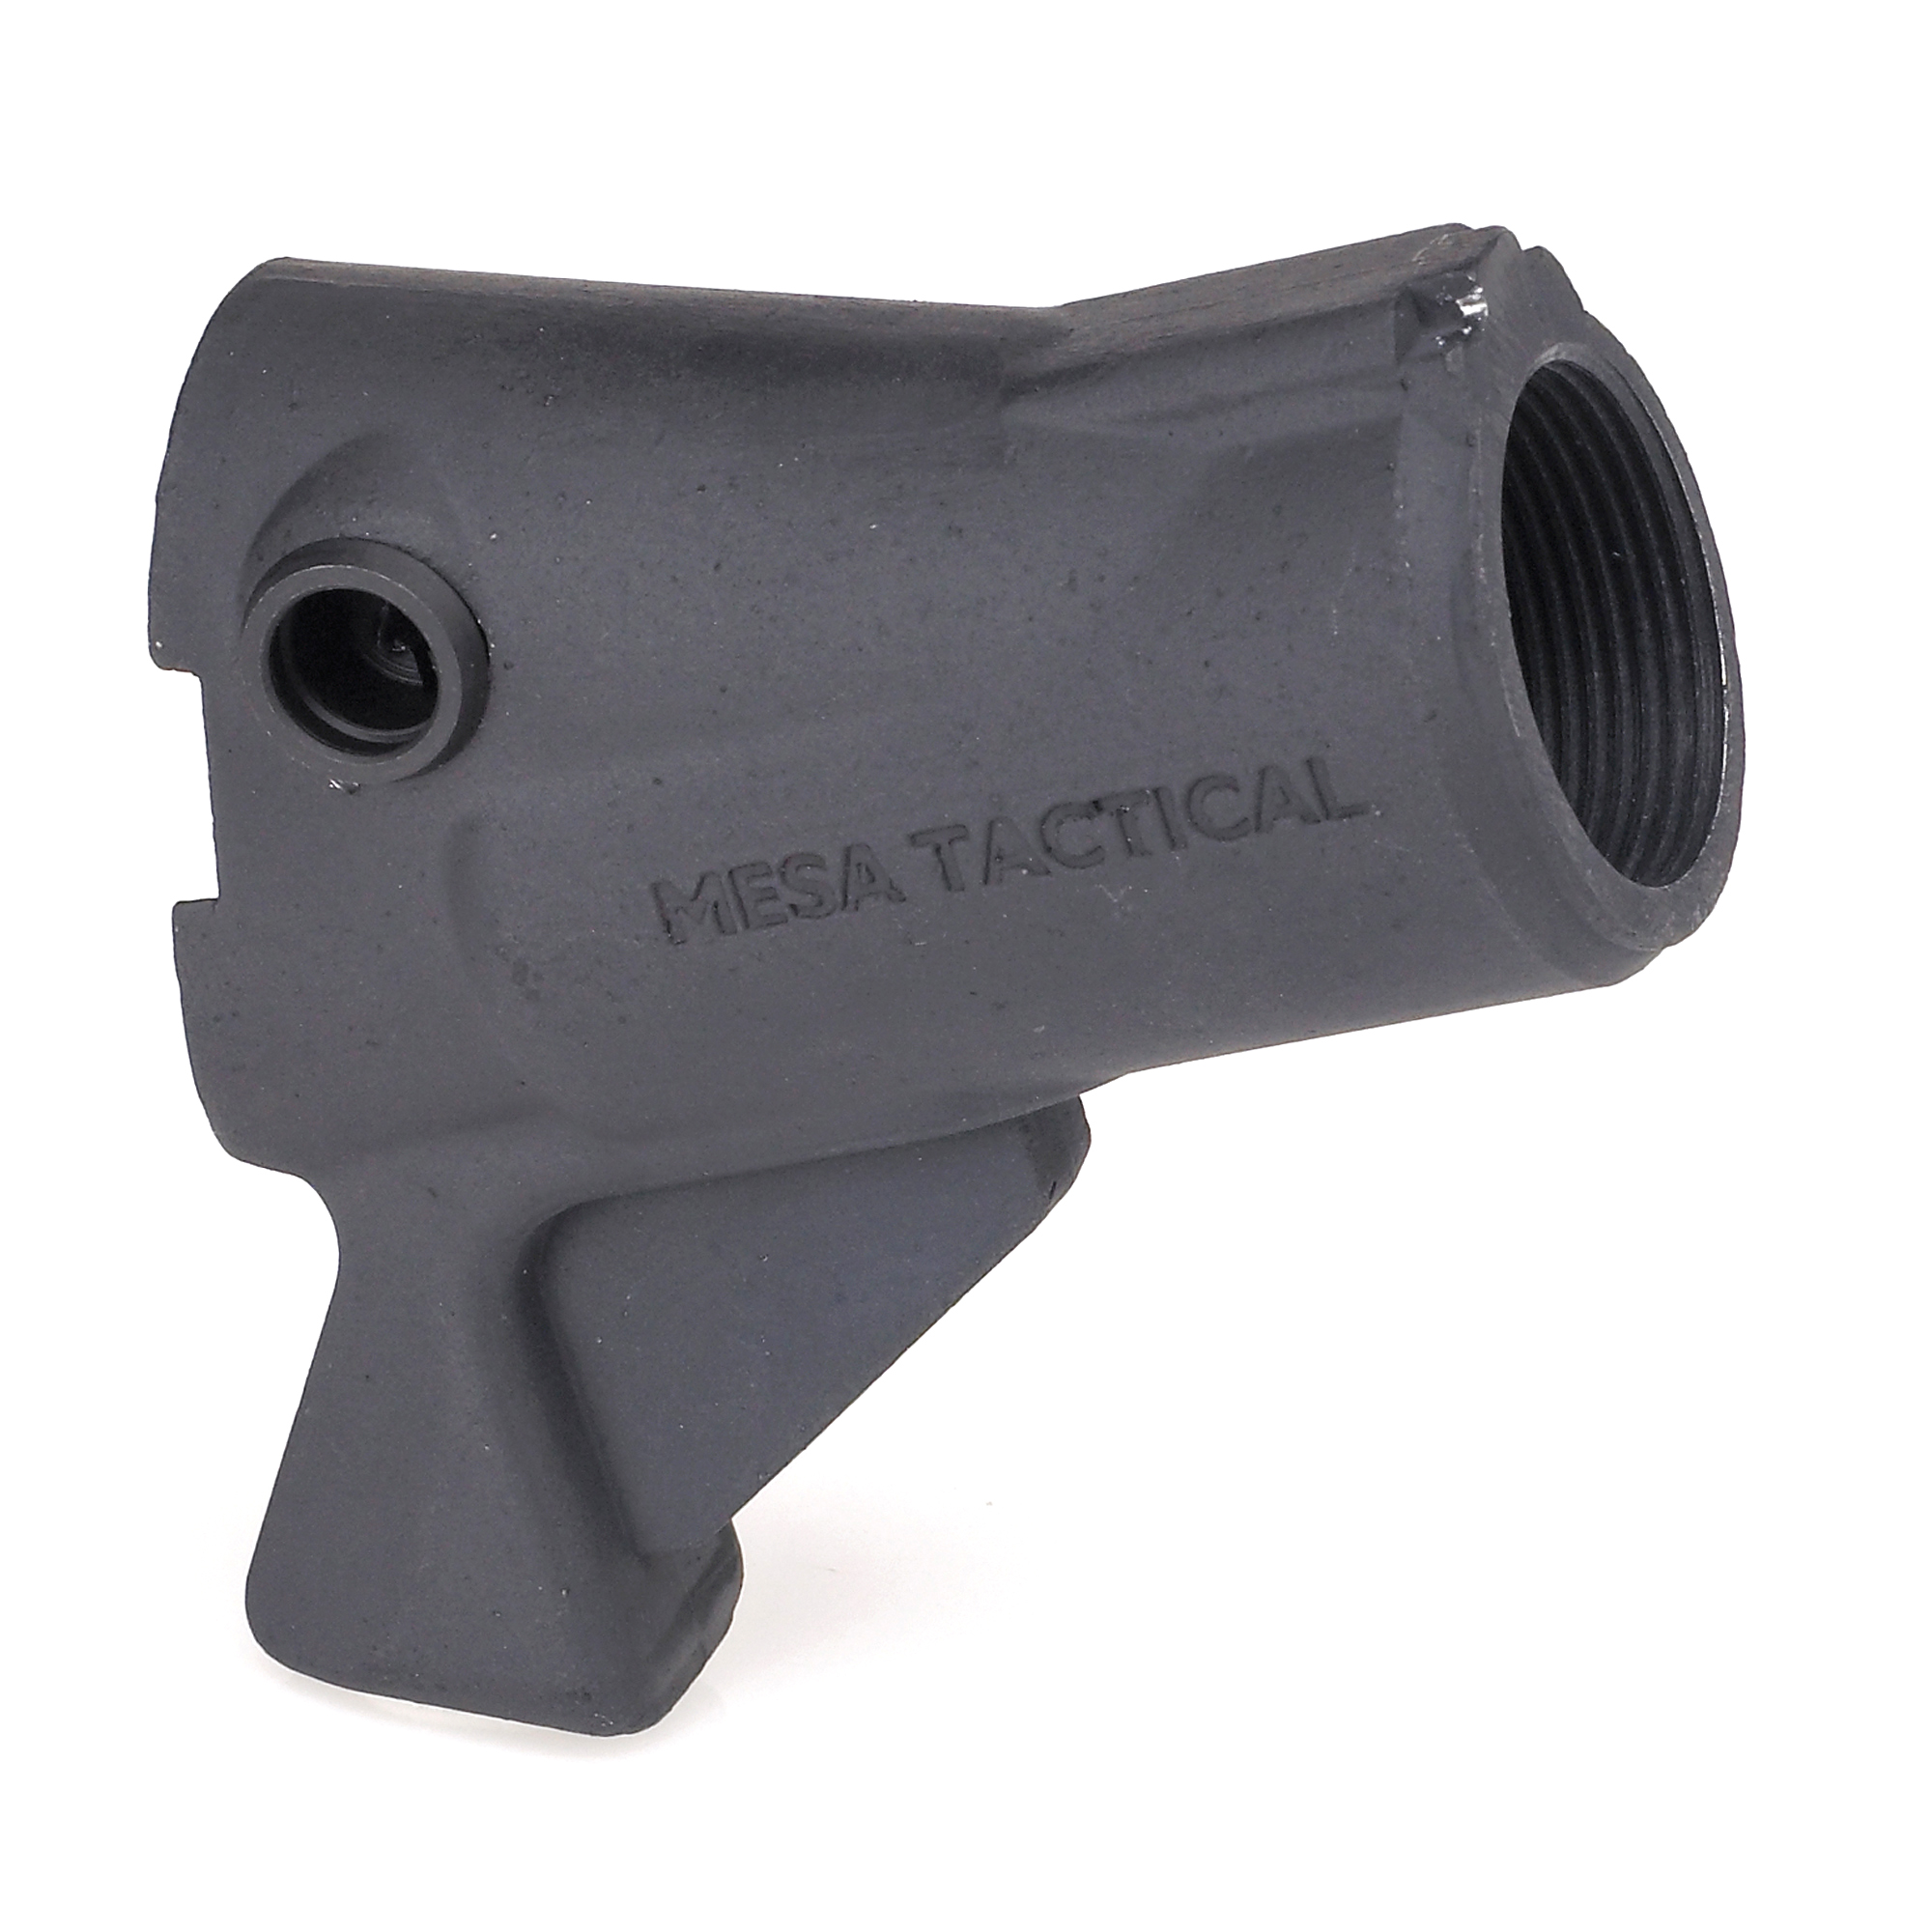 LEO telescoping stock adapters feature a stock elevation about an inch lower than the High-tube adapters and don't require sighting or aiming aids.